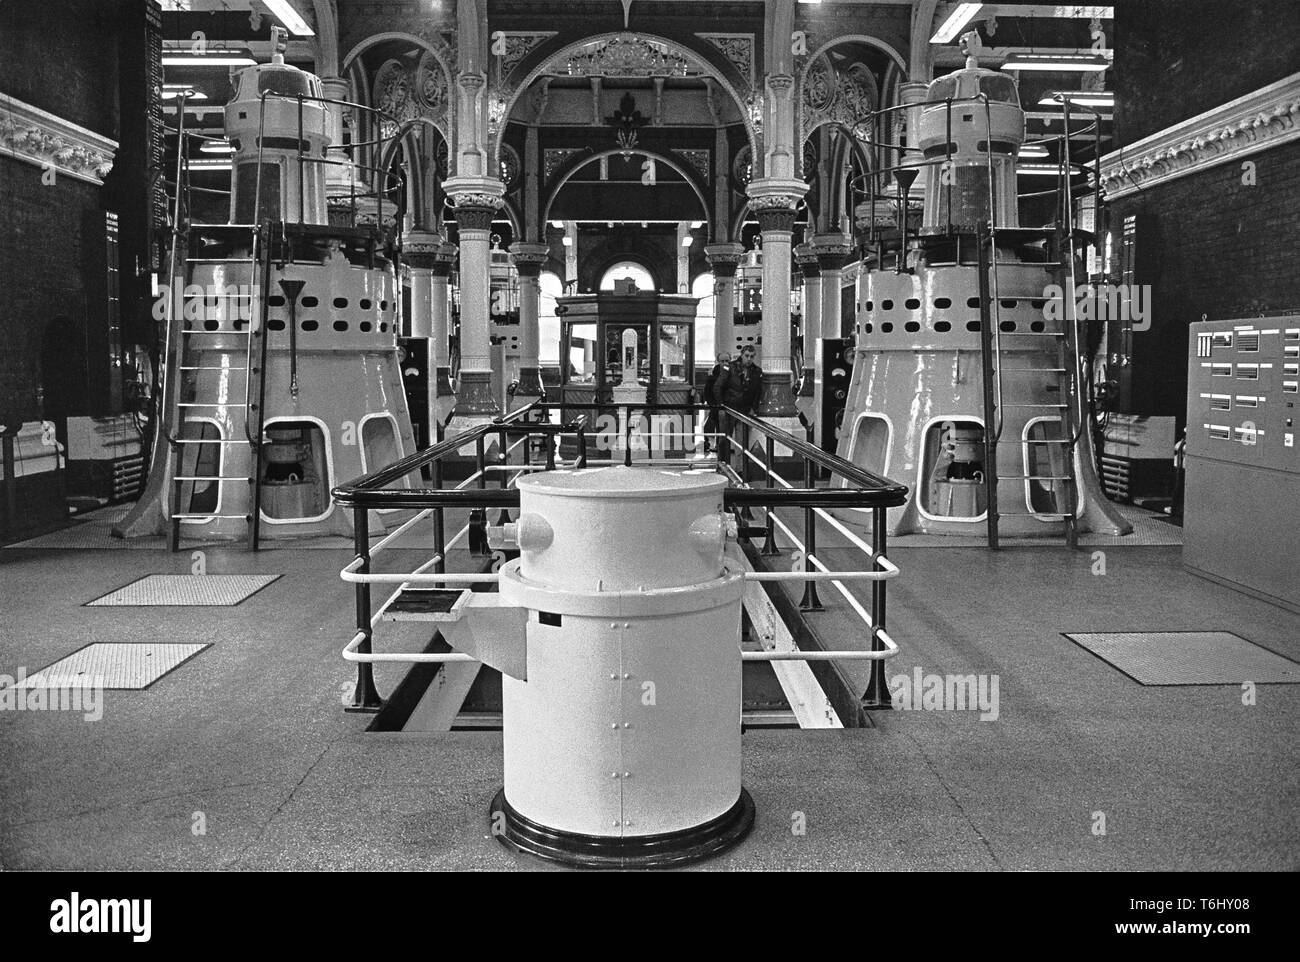 7-2 Tower Hamlets Abbey Mills Pumping Station 1979.nef - Stock Image